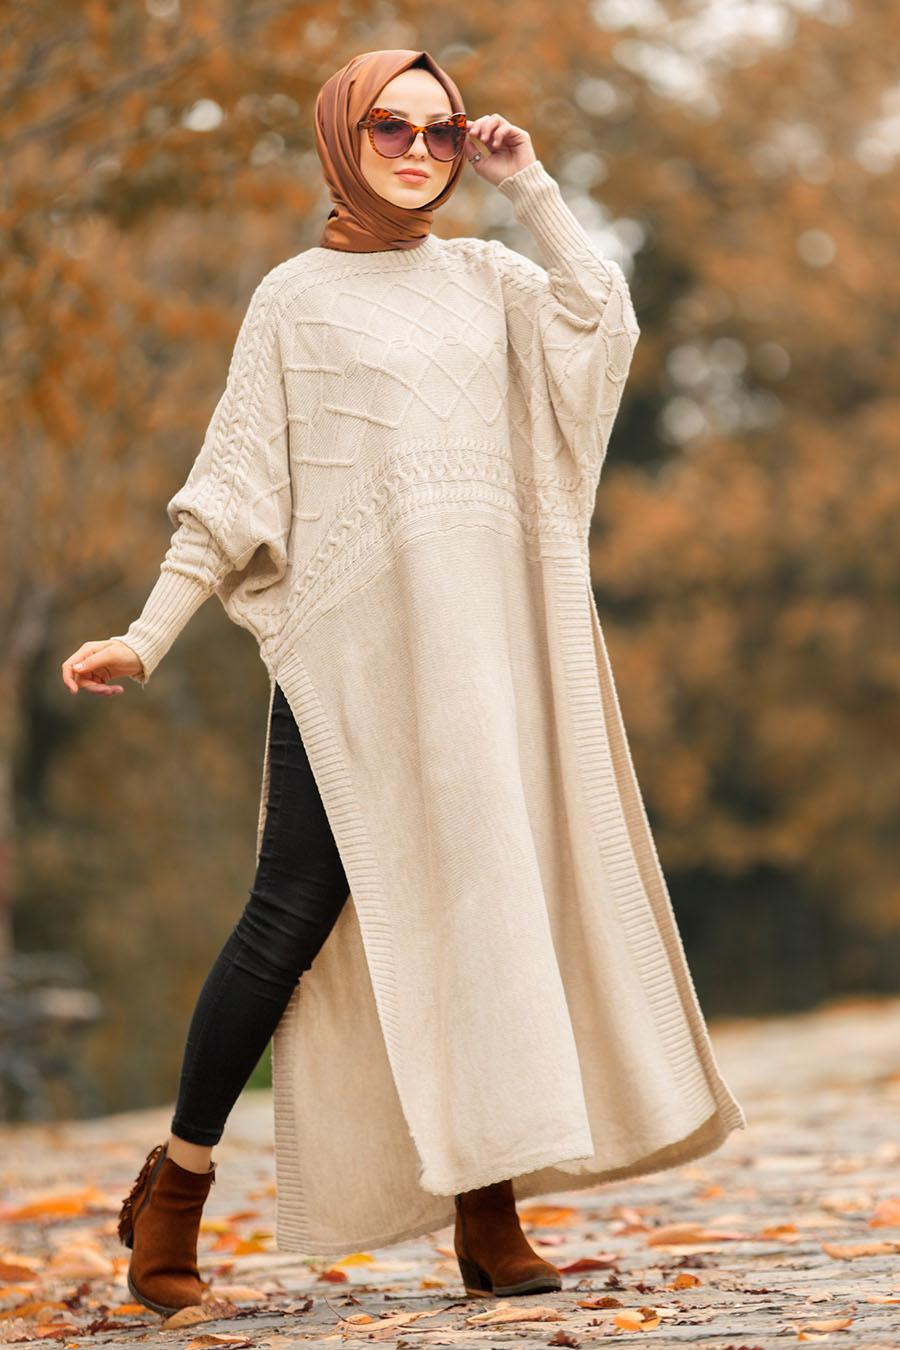 Nayla Collection - Beige Hijab Knitwear Poncho 15598BEJ